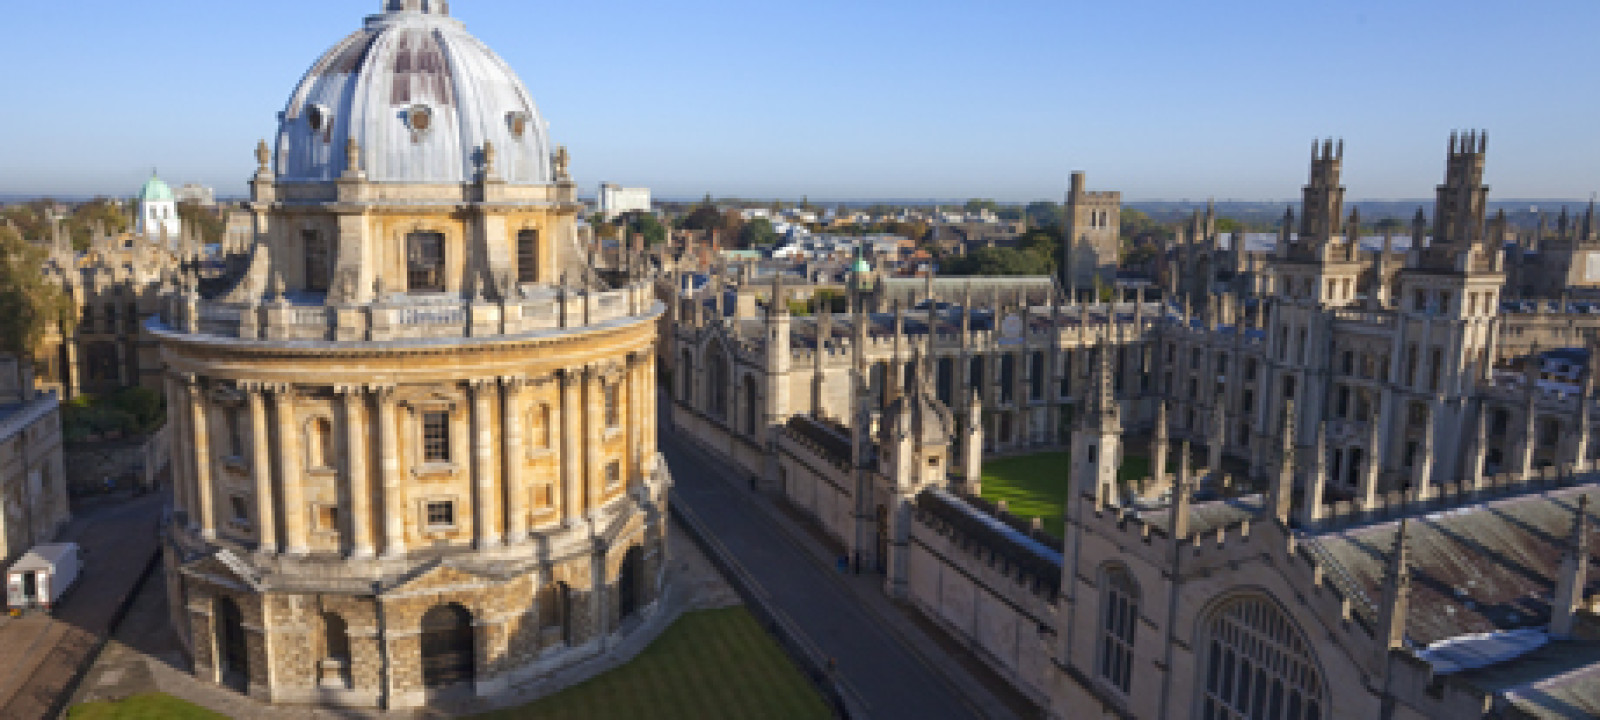 Radcliffe Camera and All Souls College, Oxford University, Oxfor